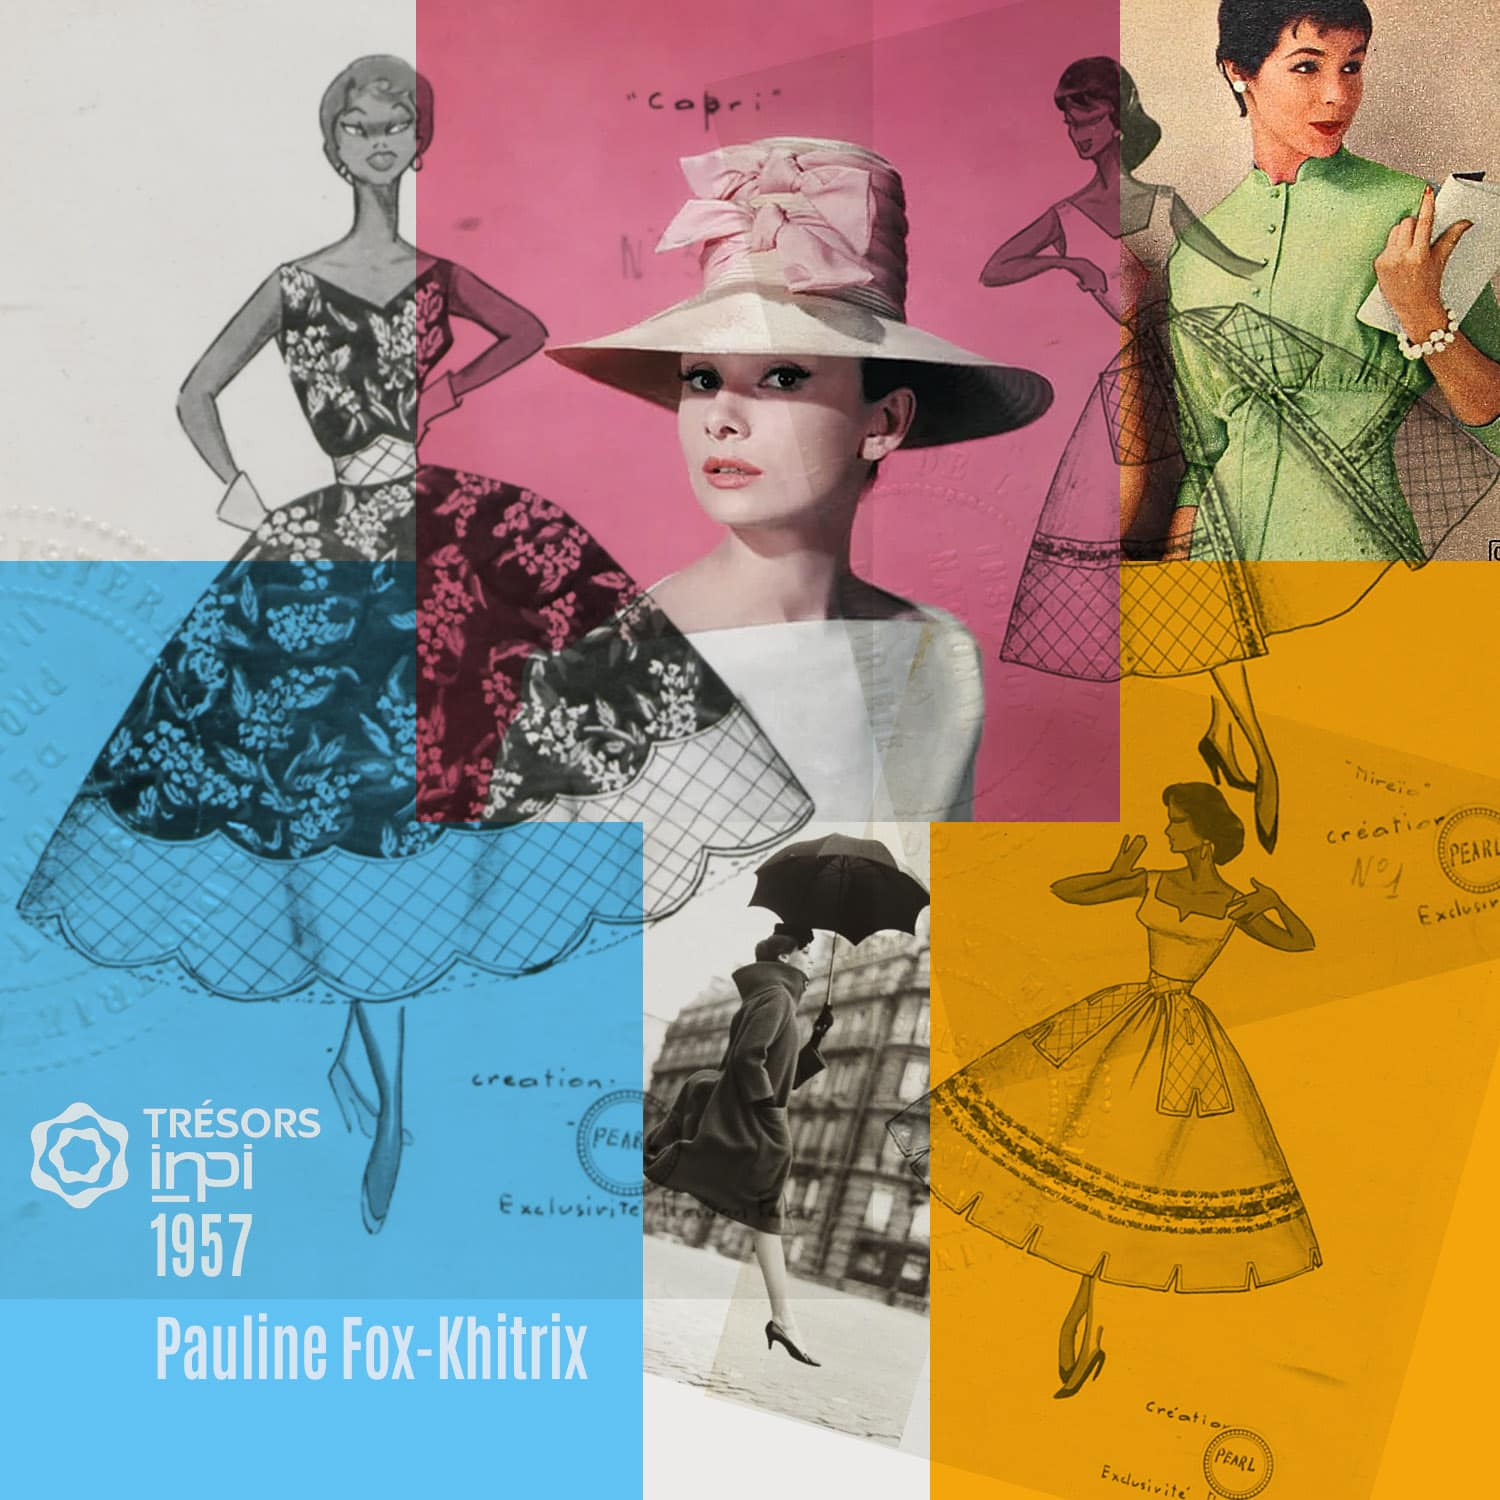 Pauline Fox-Khitrix 1957 skirt dress inventions - INPI archives